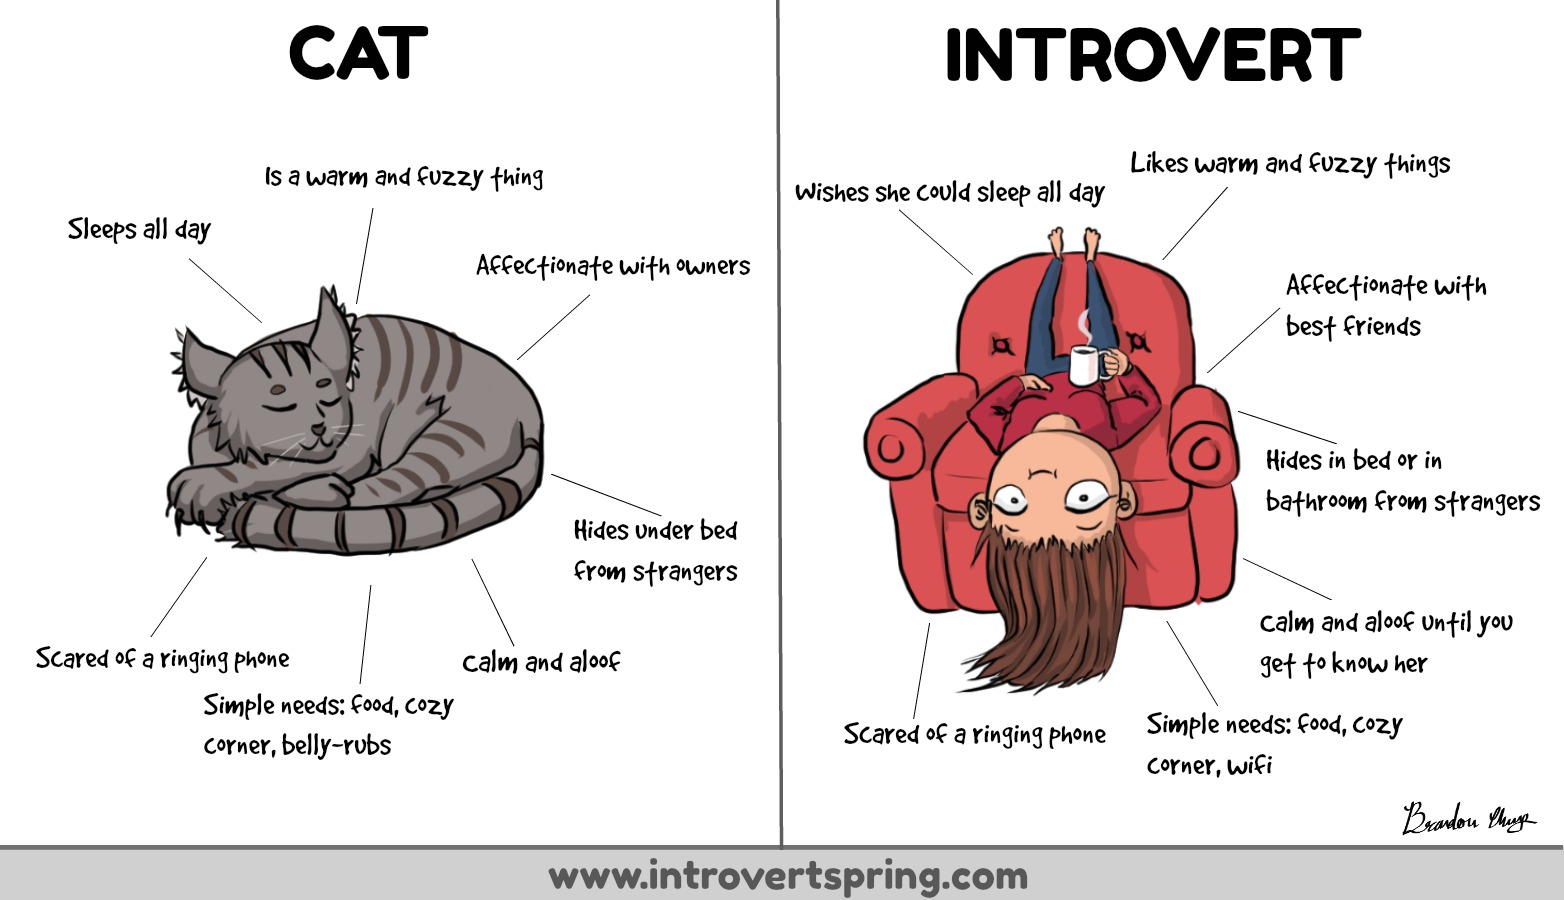 introverts are like cats